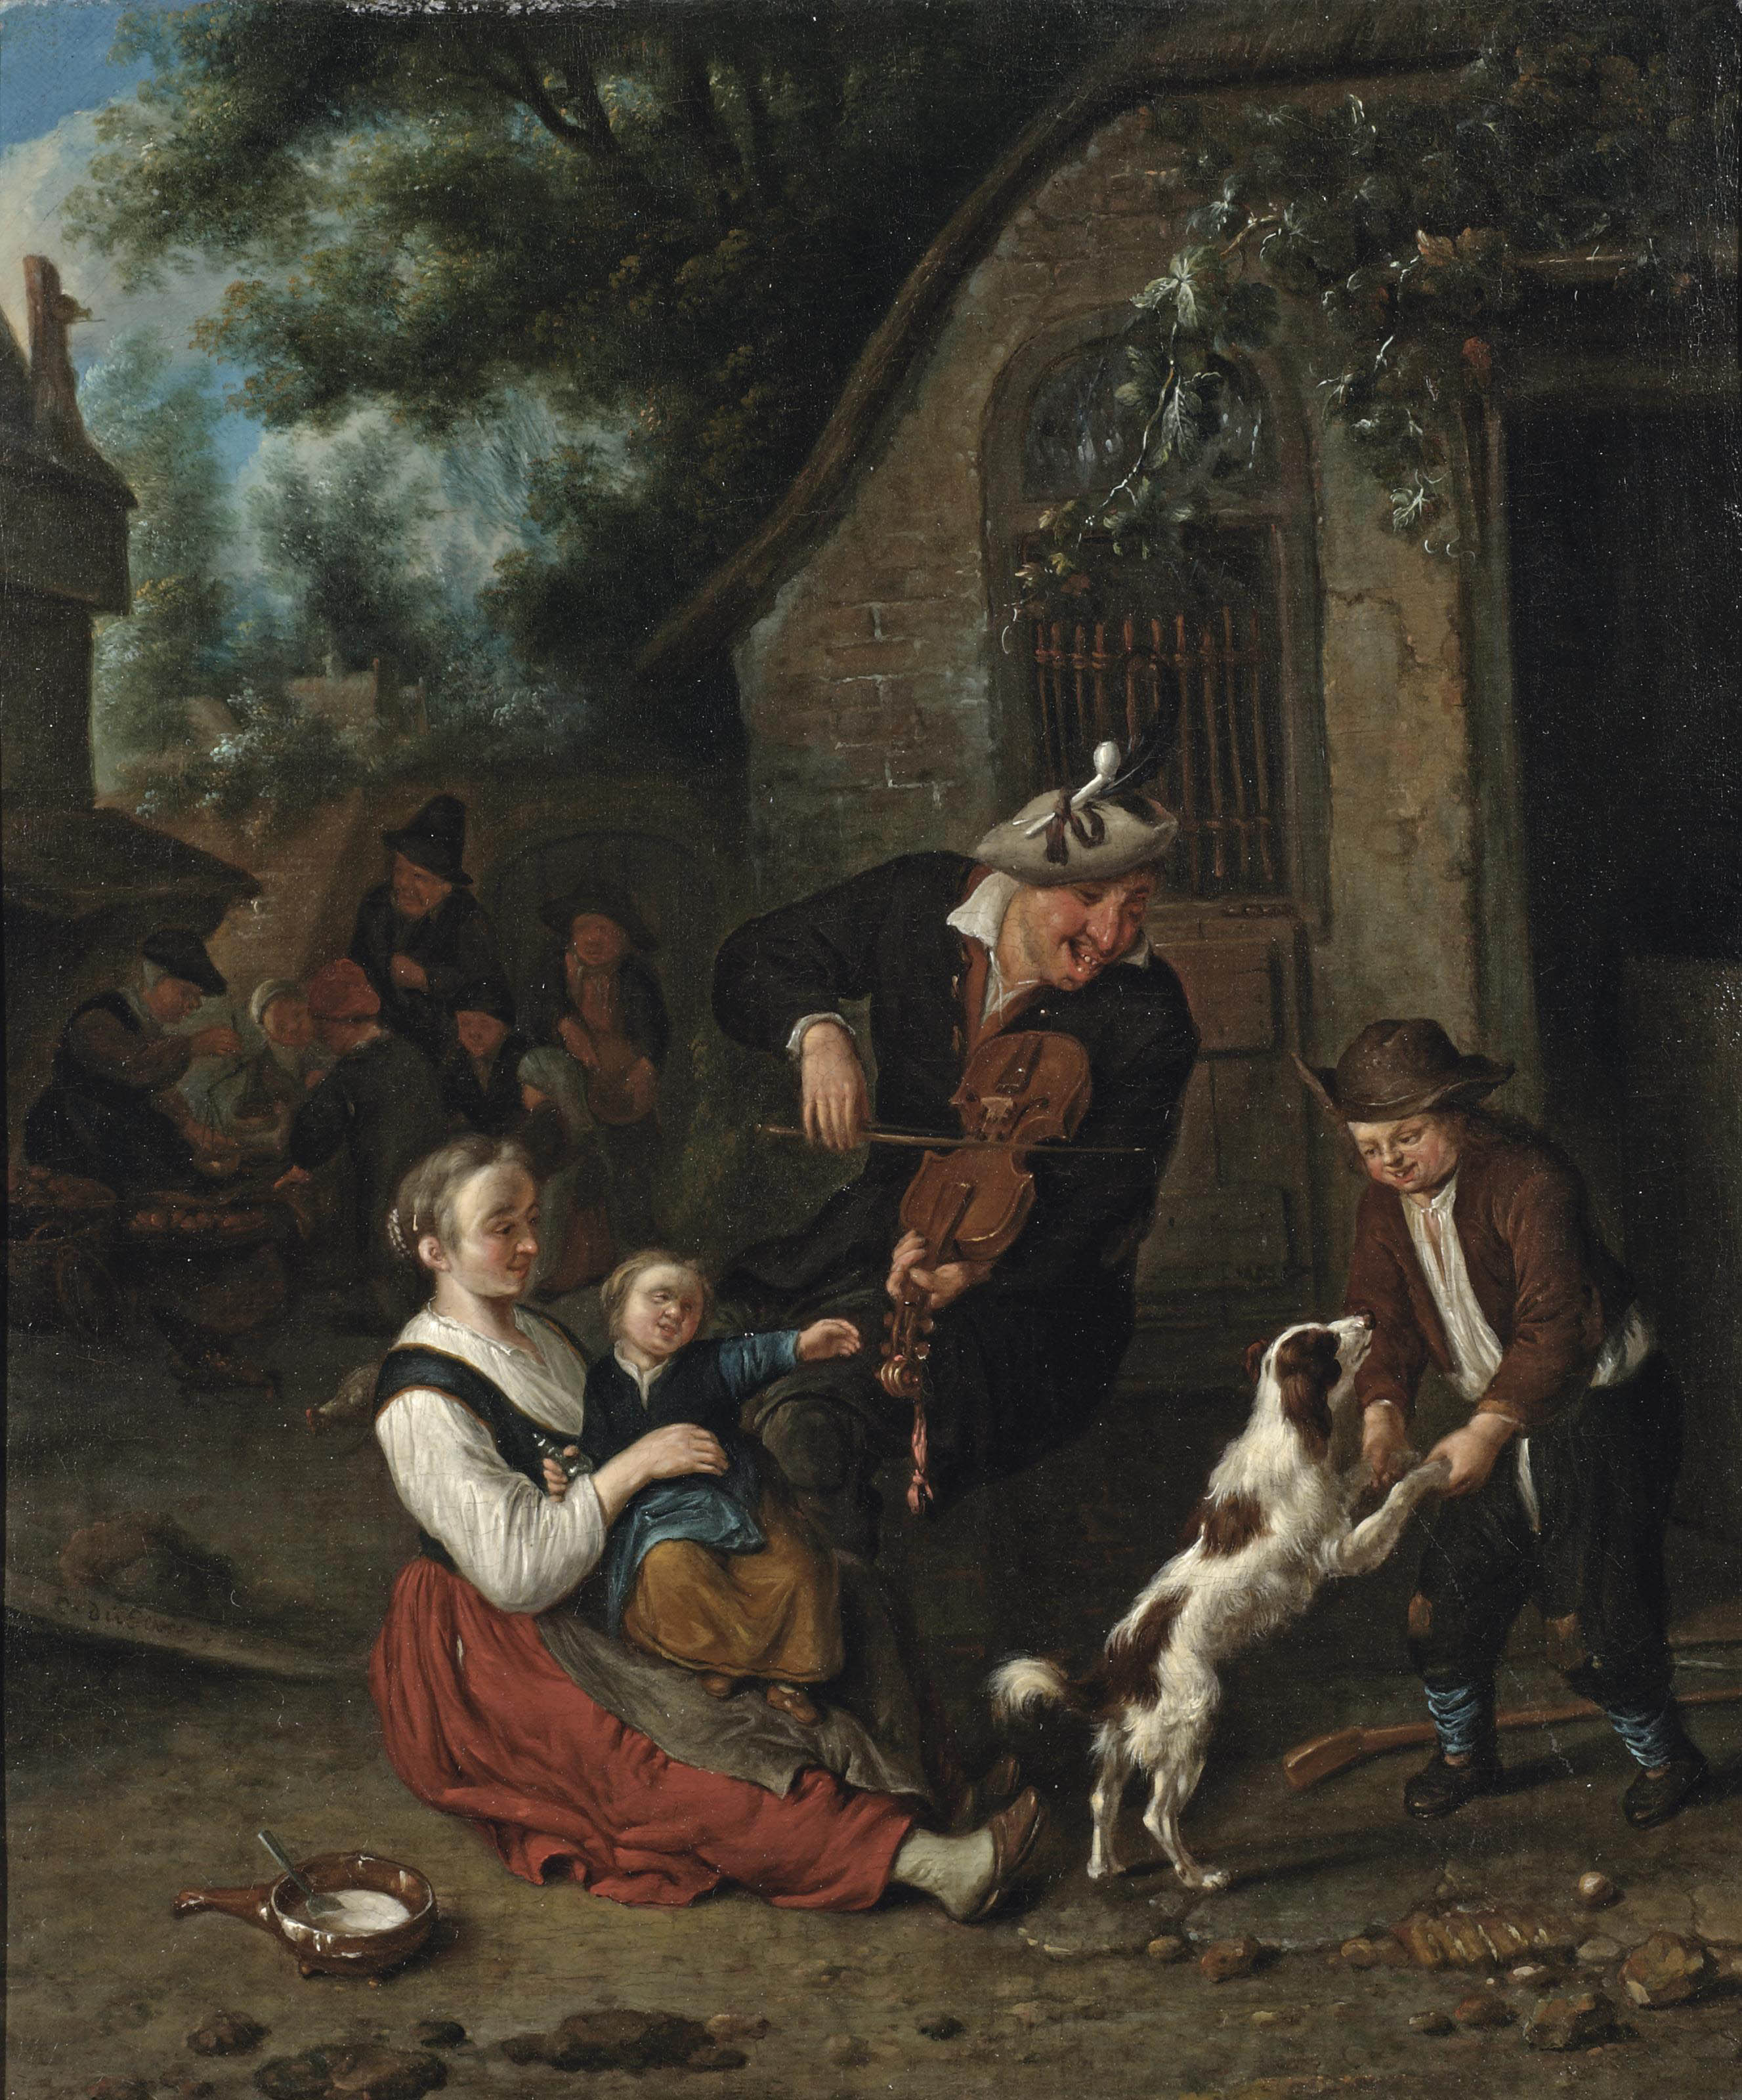 A violin player and other figures merrymaking outside an inn